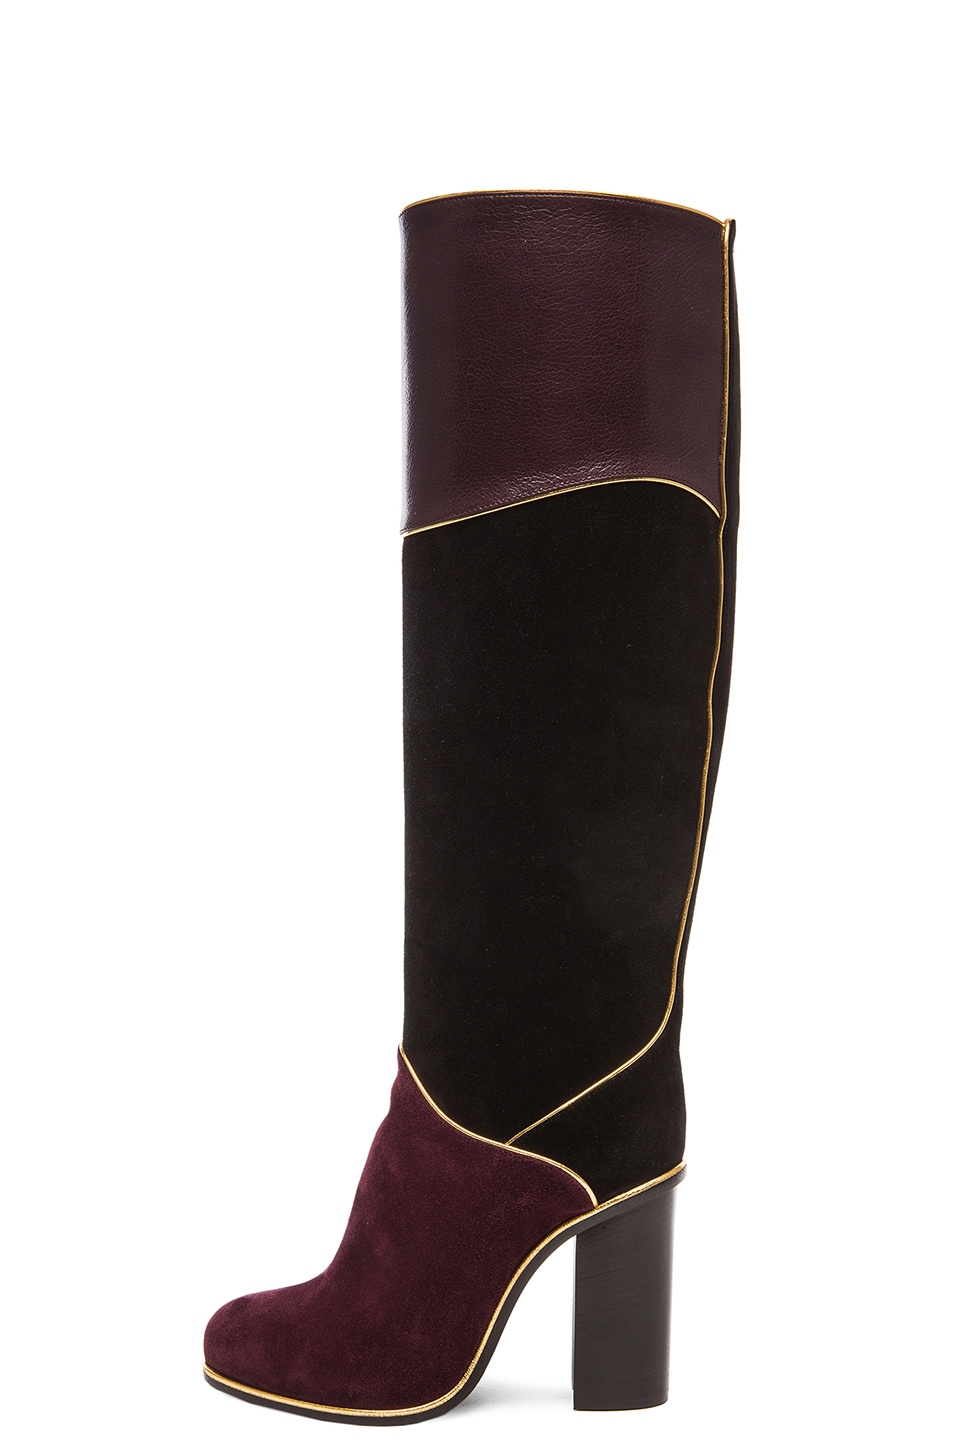 Image 5 of Lanvin Suede Calfskin Piping Boots in Black & Burgundy